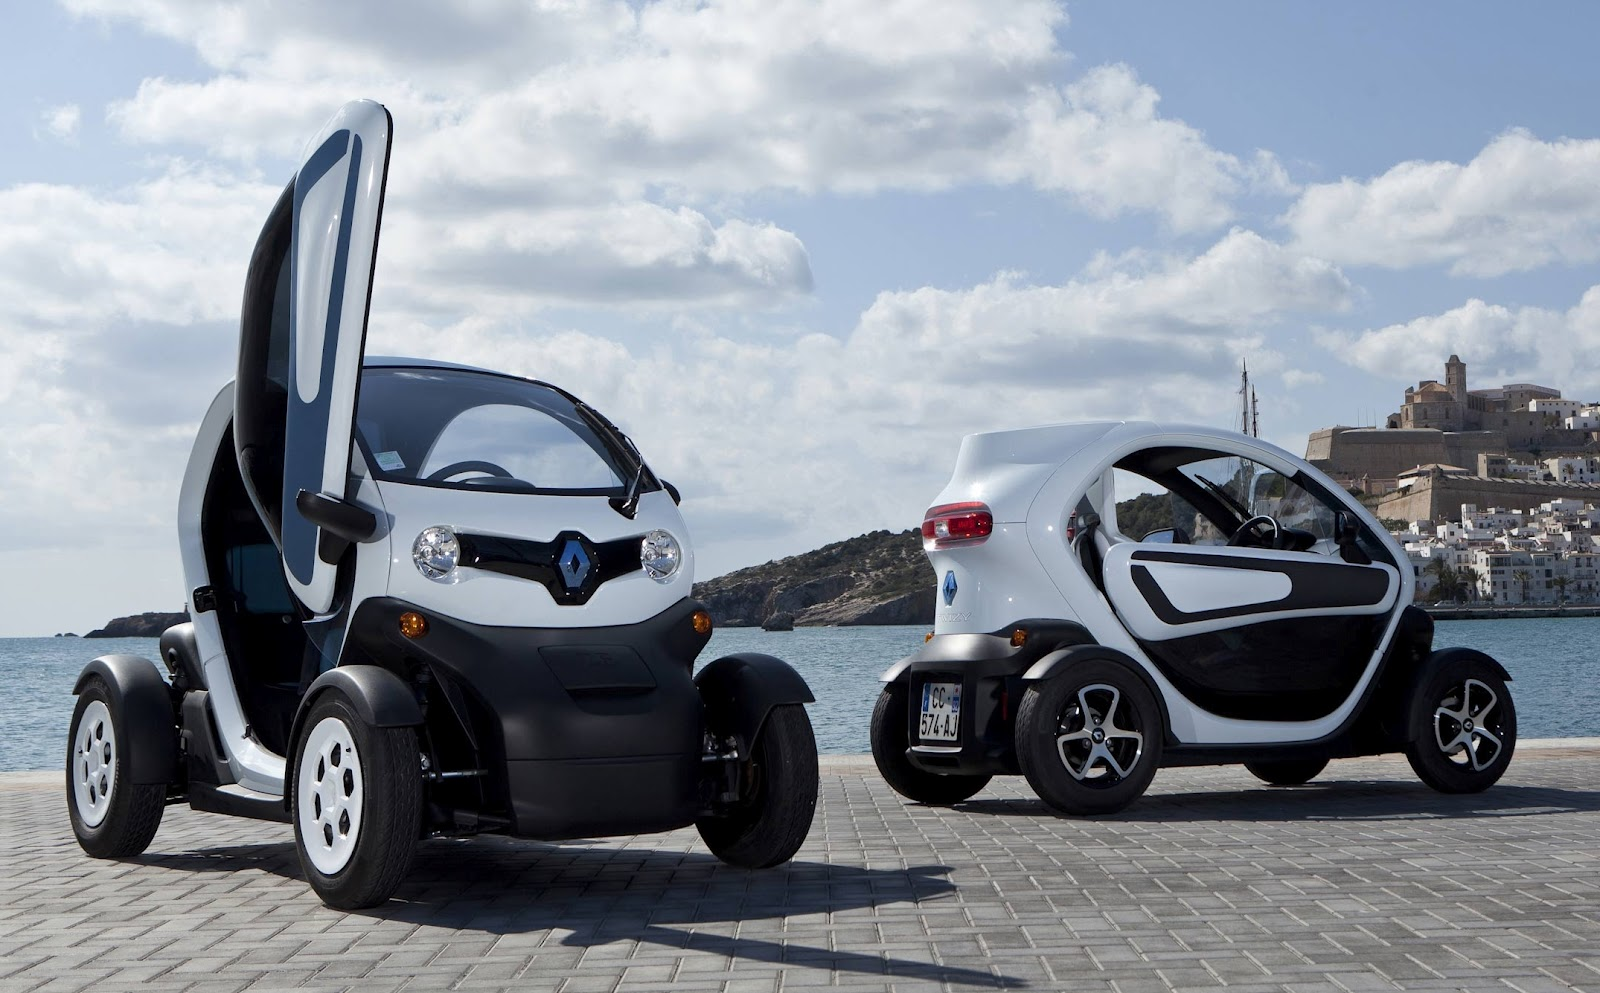 renault twizy concorrente el ctrico do smart j tem. Black Bedroom Furniture Sets. Home Design Ideas